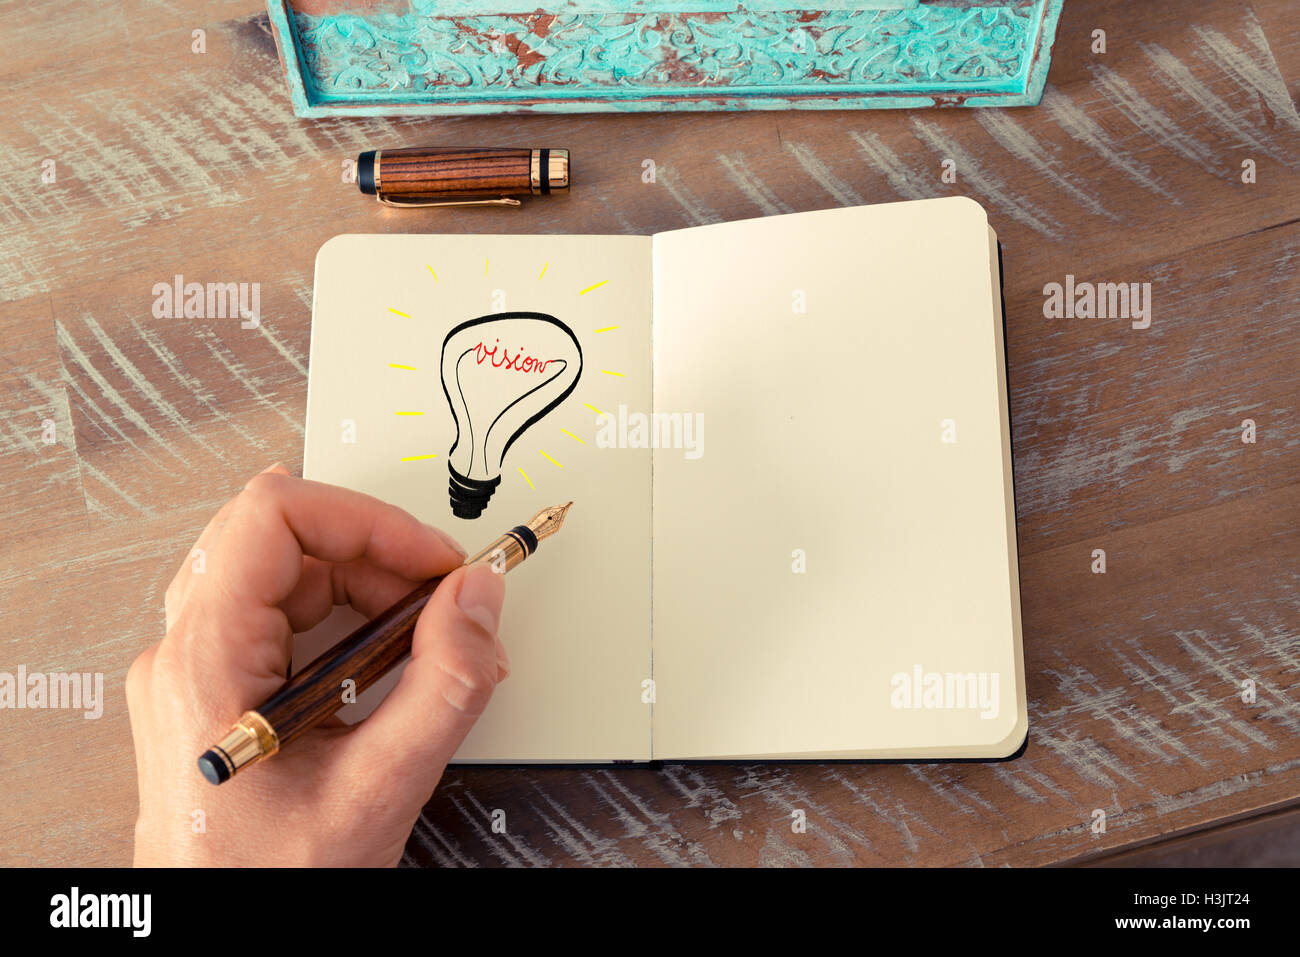 Retro effect and toned image of a woman drawing a lighting bulb with fountain pen on a notebook. VISION symbol and - Stock Image